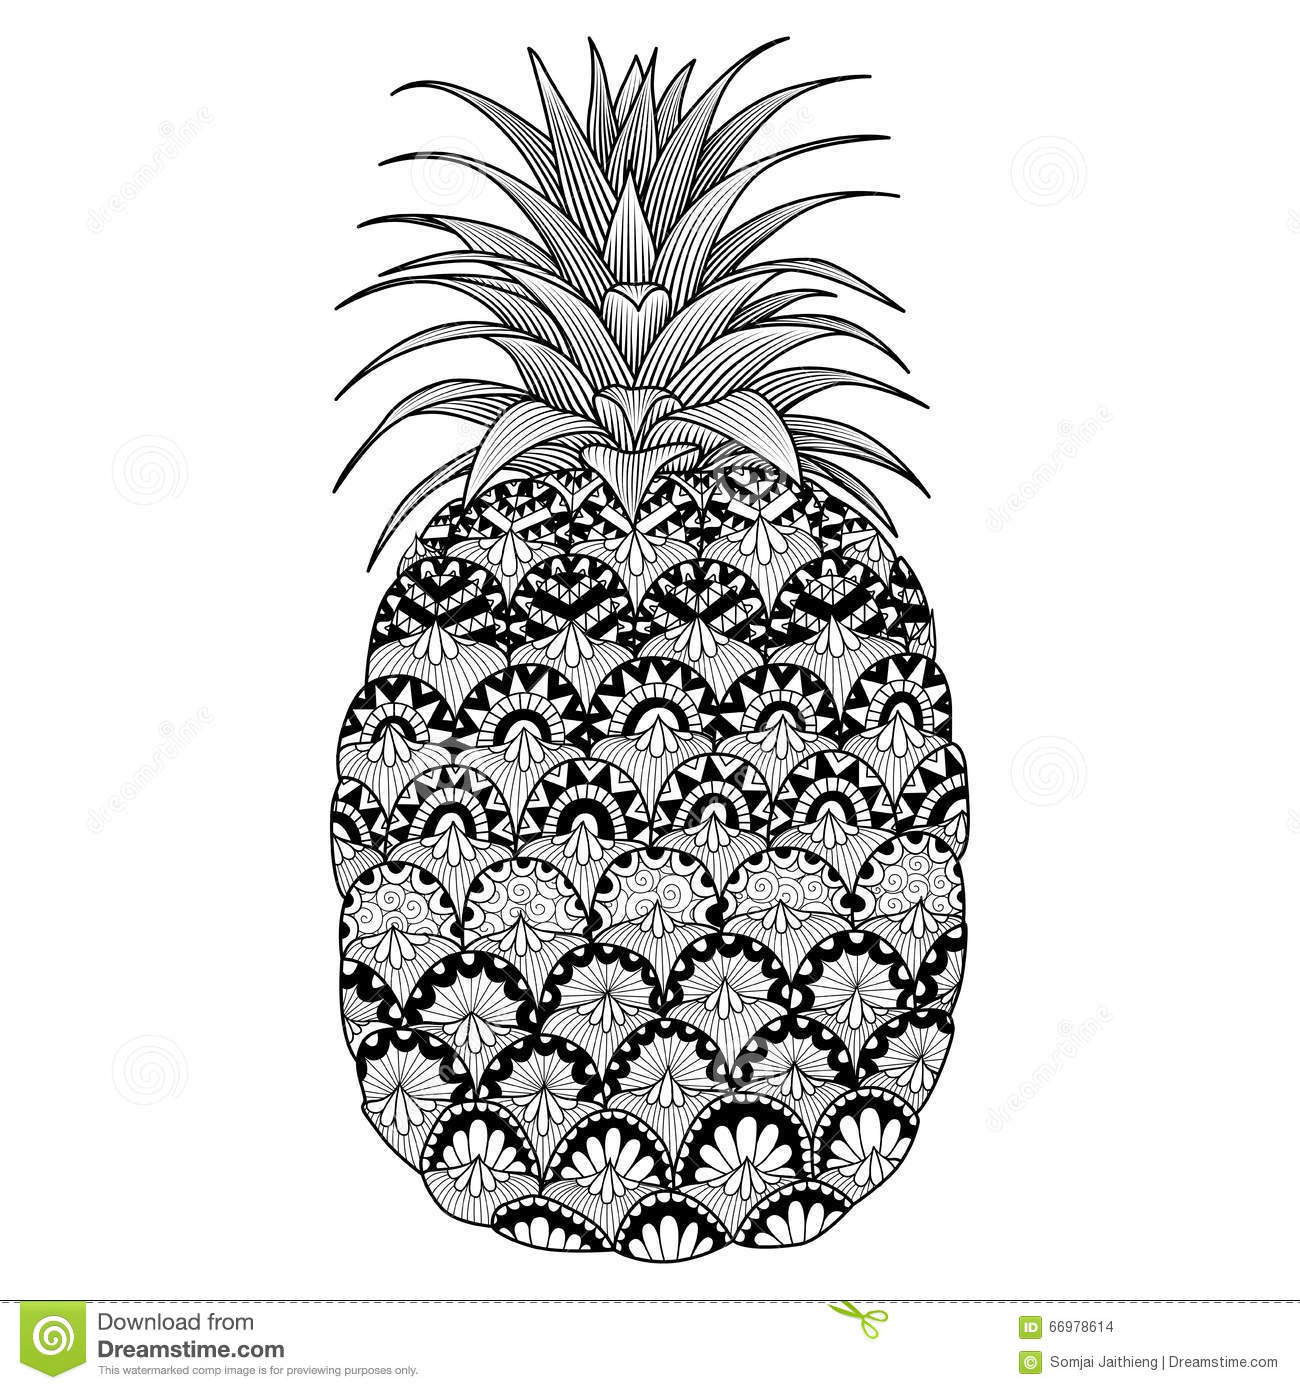 Colour Line Art Design : Line art design of pineapple for coloring book adult